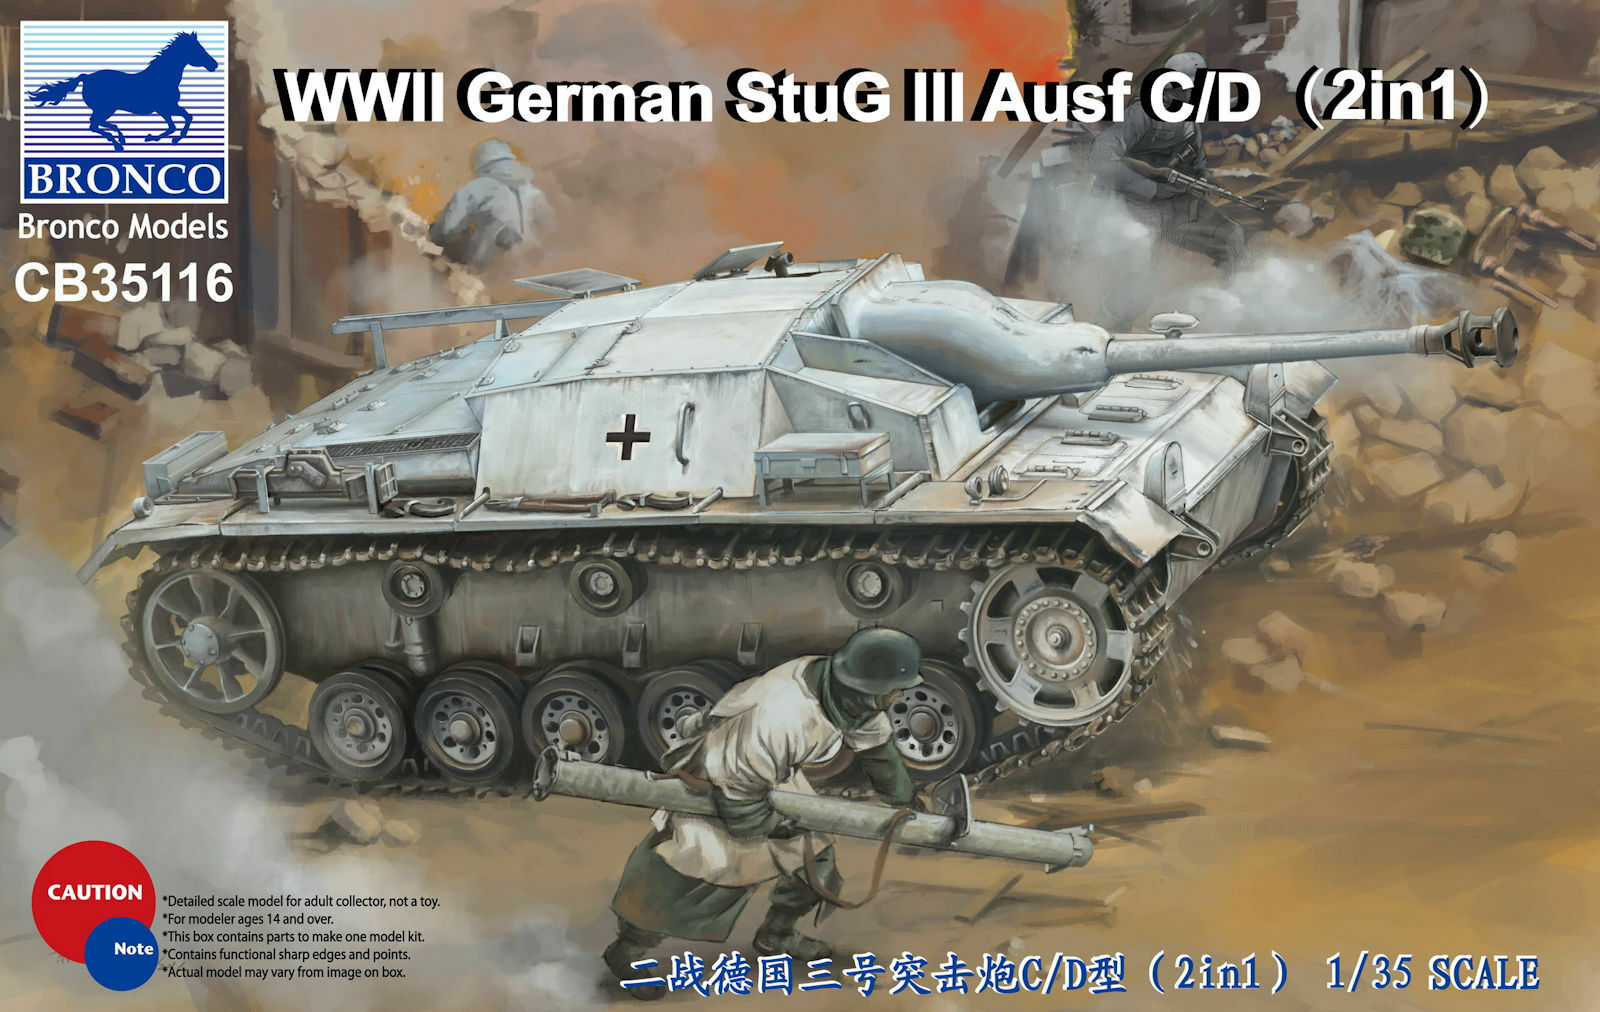 Bronco Models  Gerhomme StuG III Ausf. C \ D WWII 2in1 1 35 Scale cod.cb35116  connotation de luxe discret